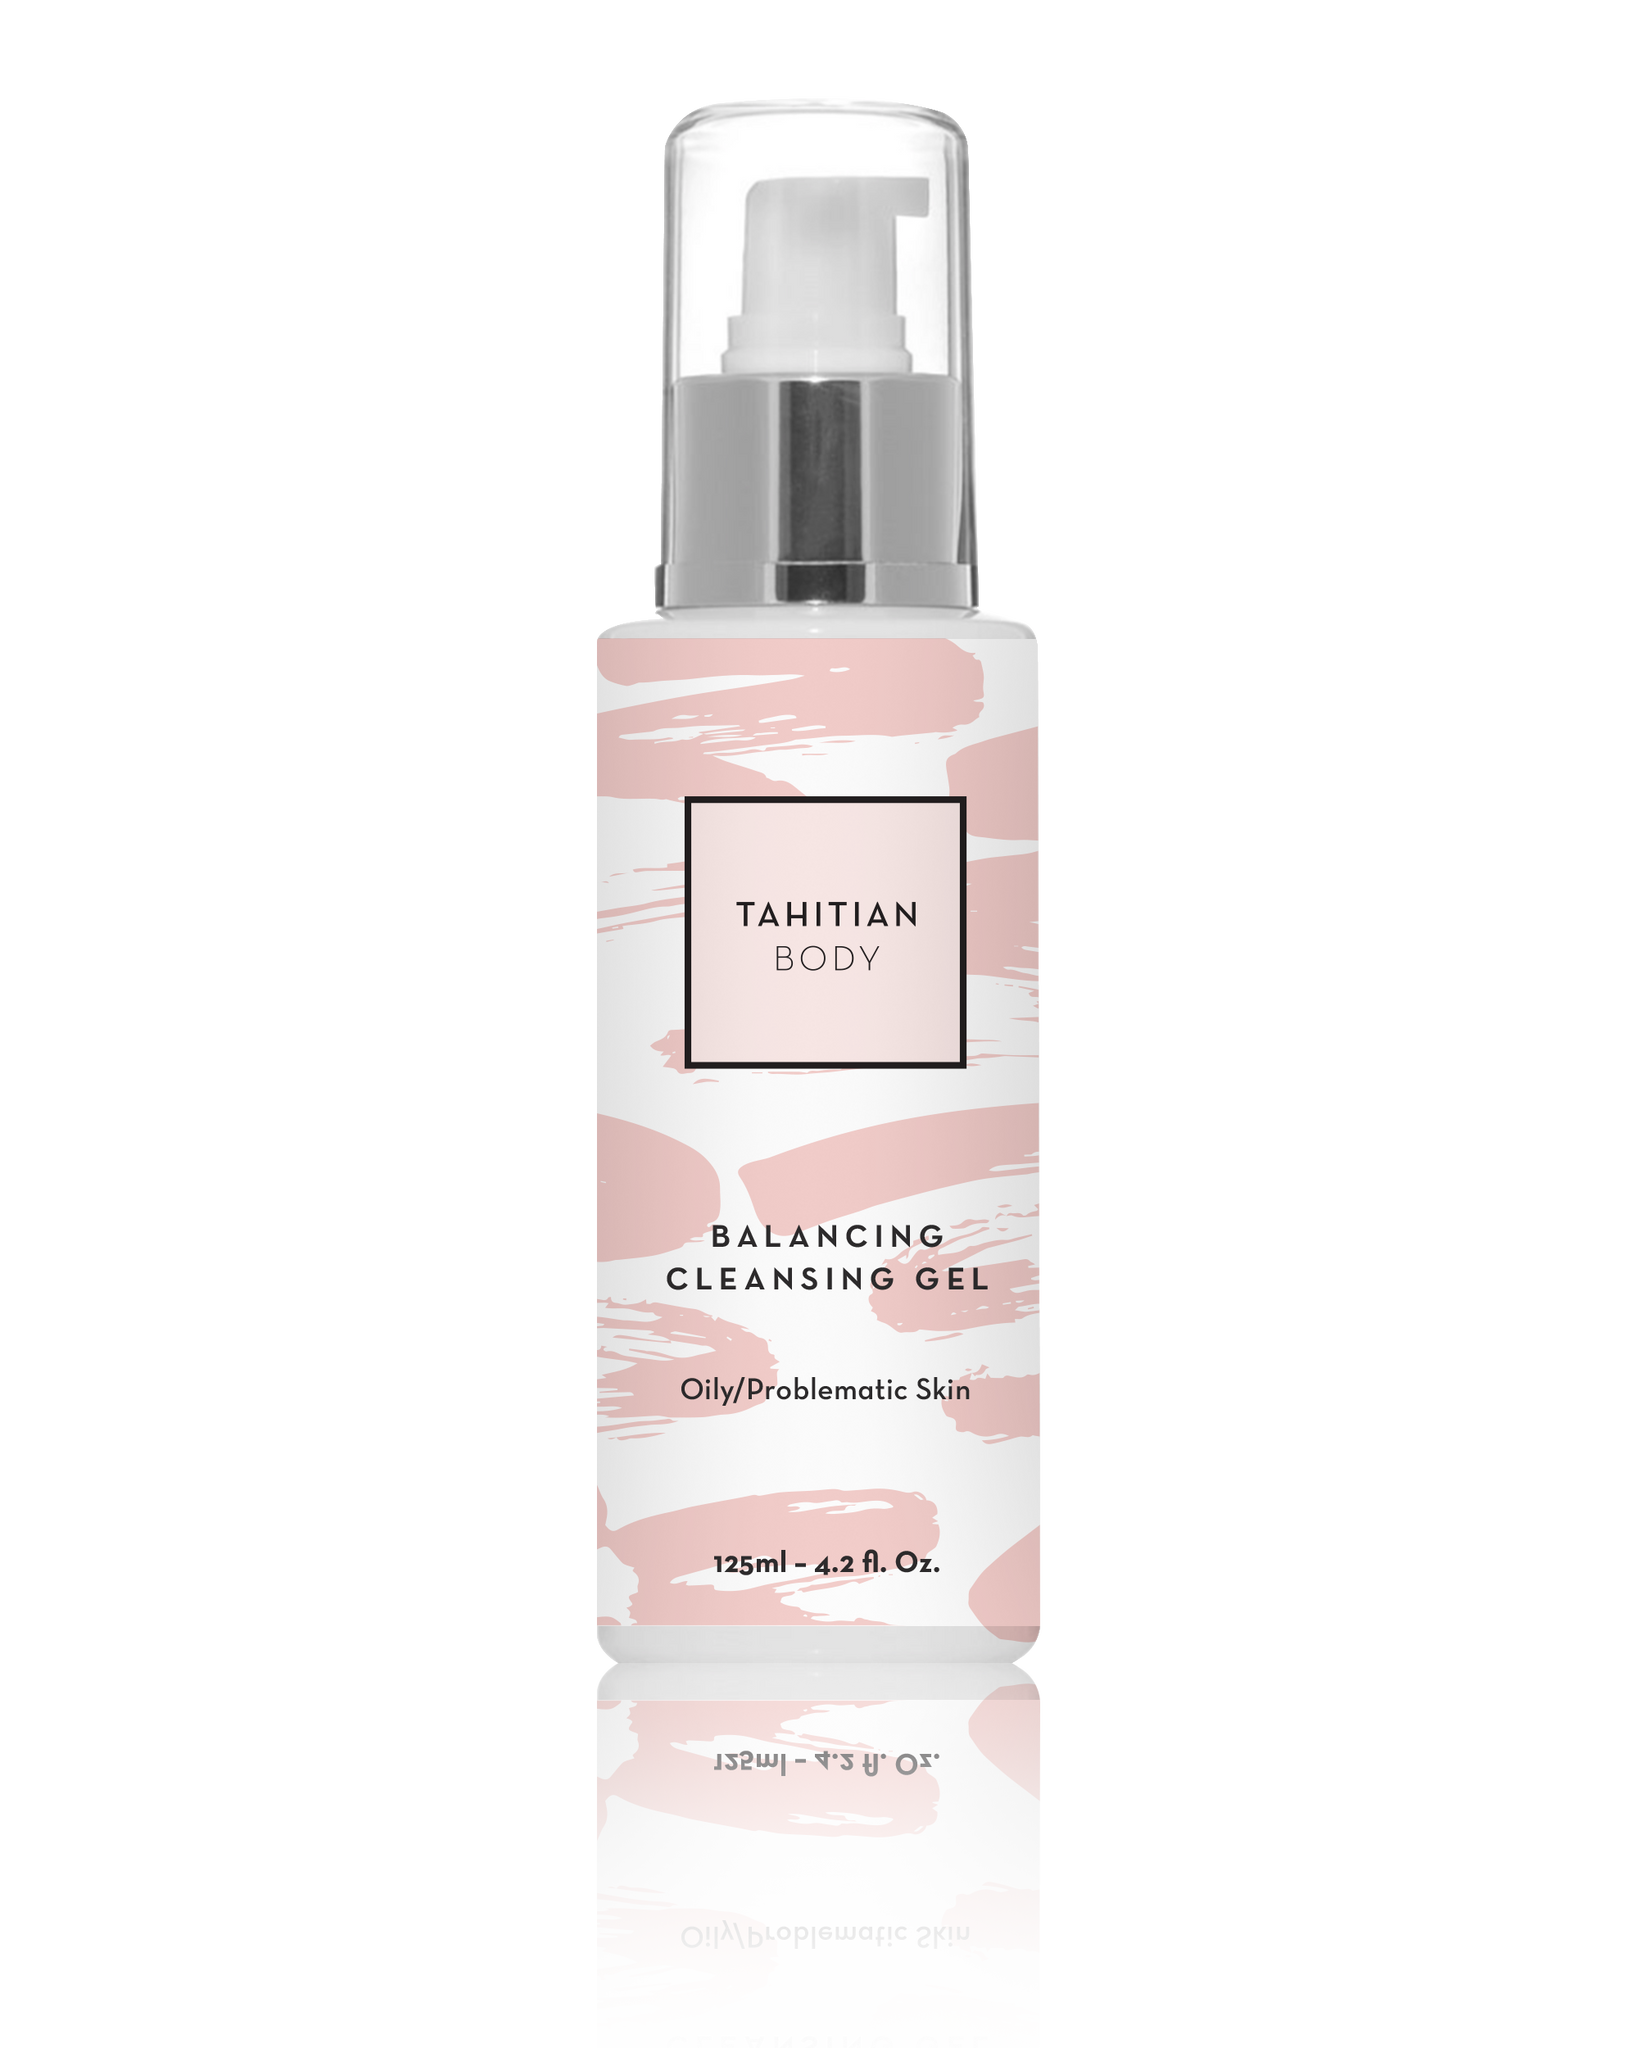 Balancing Cleansing Gel | Oily / Problematic